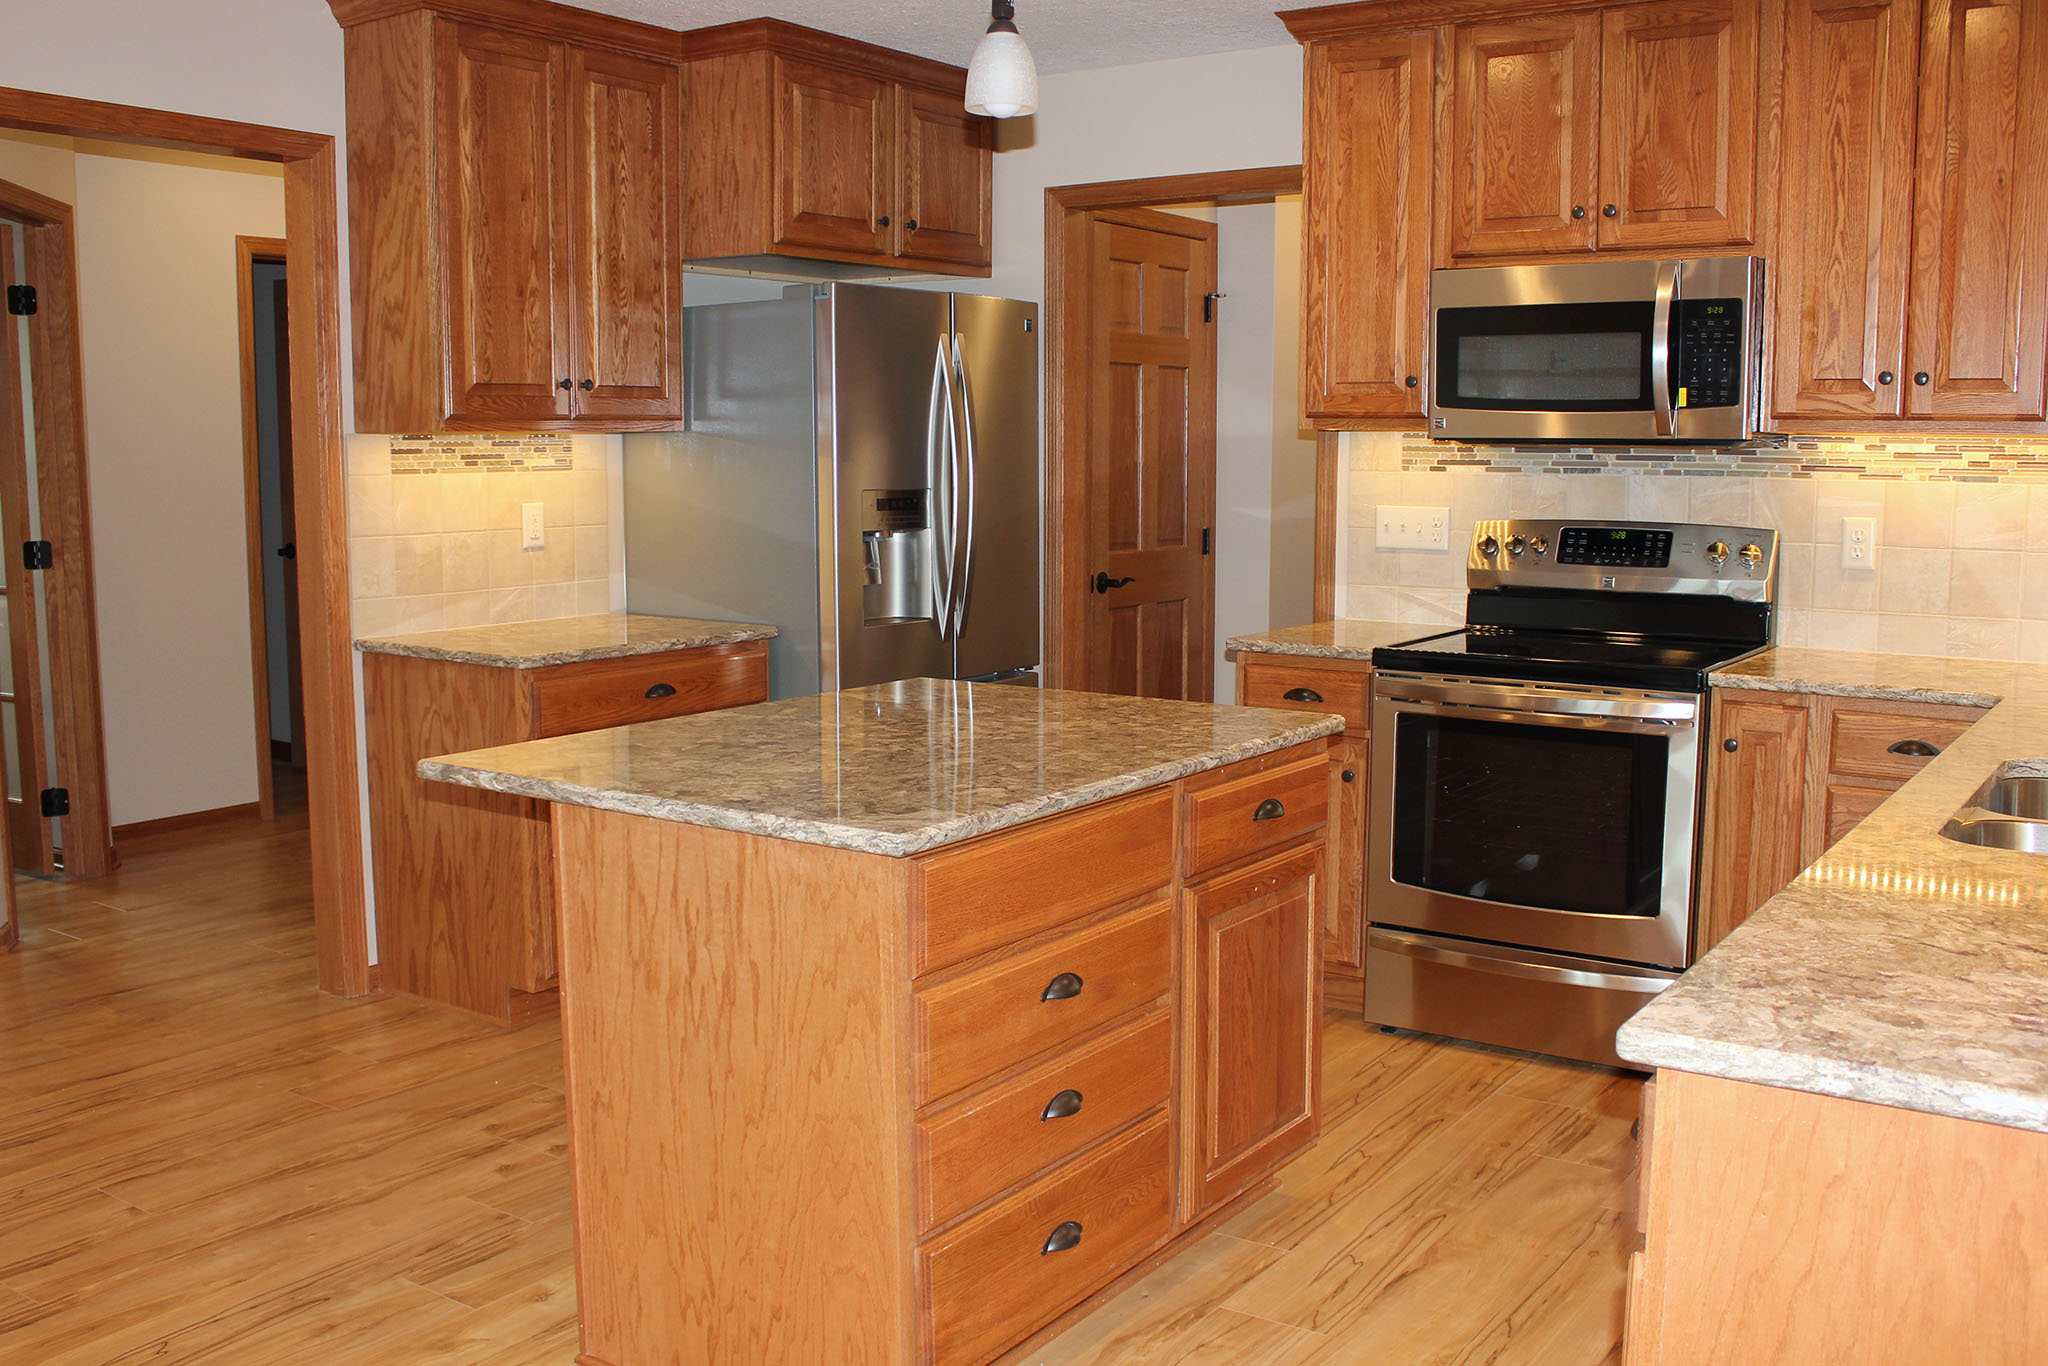 Bright kitchen with wood cabinets